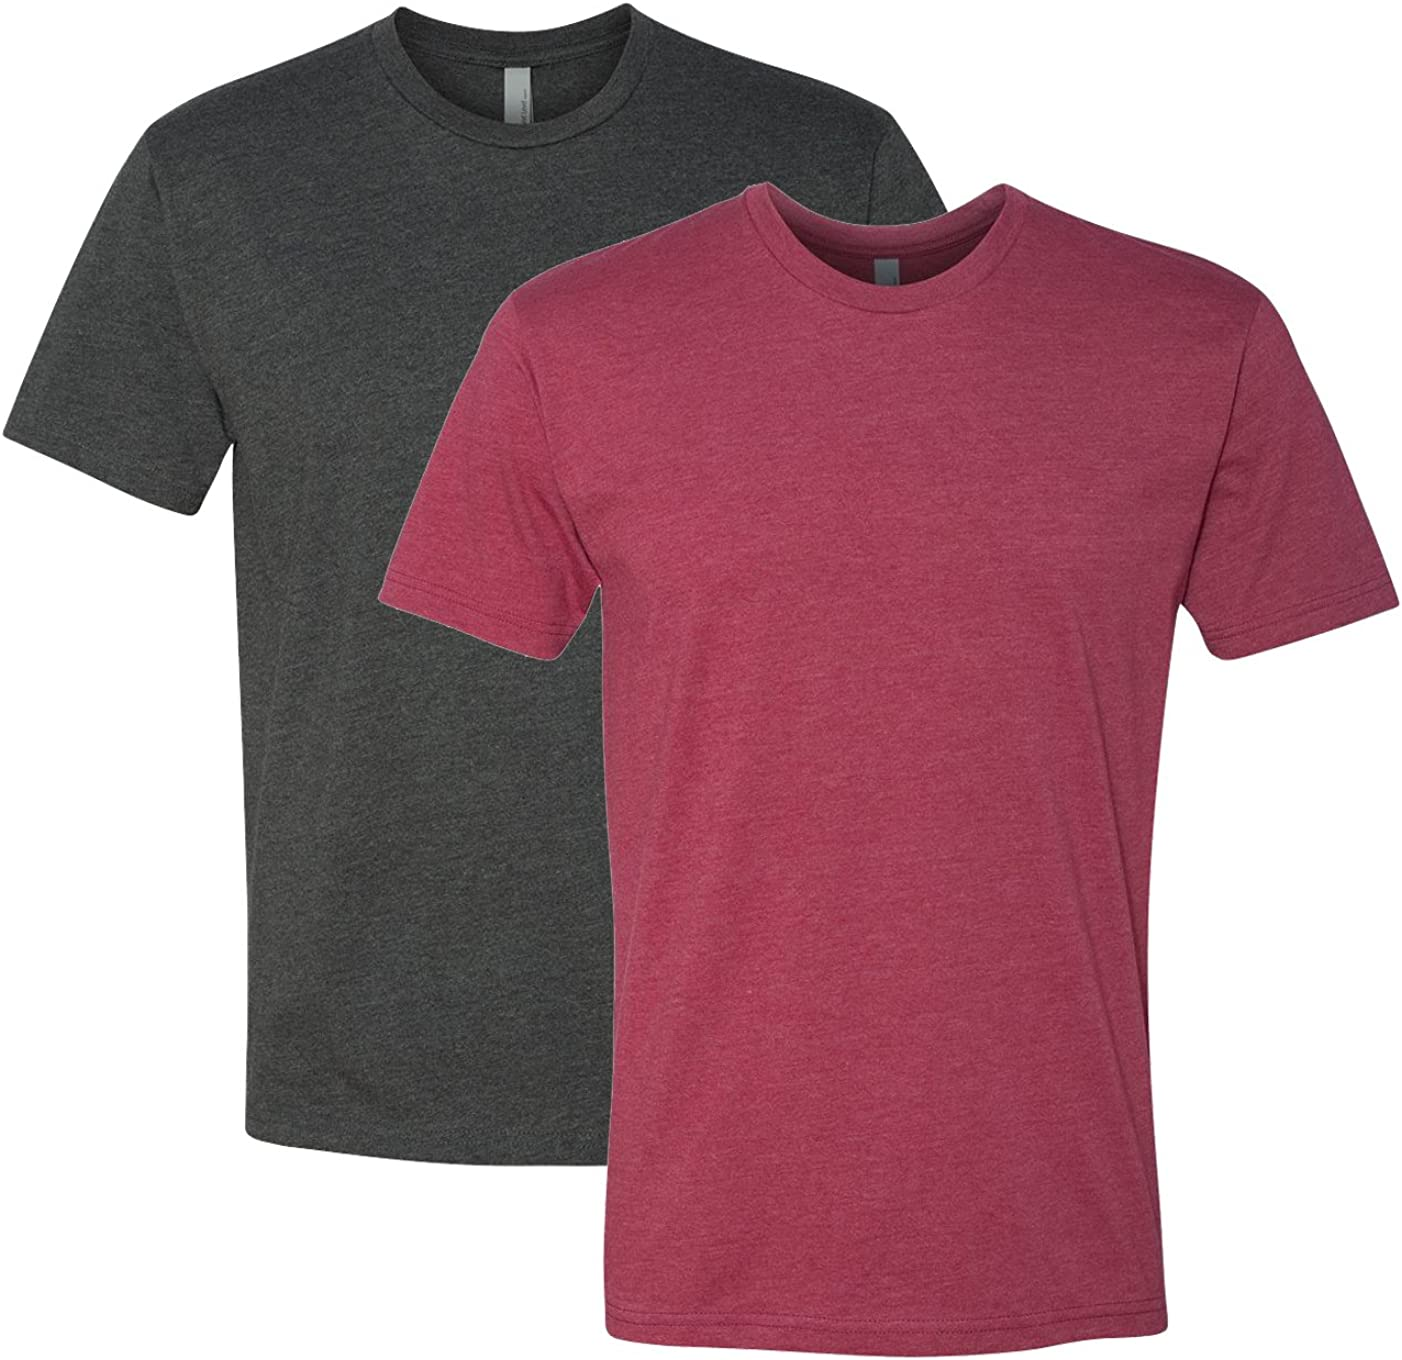 Next Level Mens T-Shirts (N6210) Pack of 2